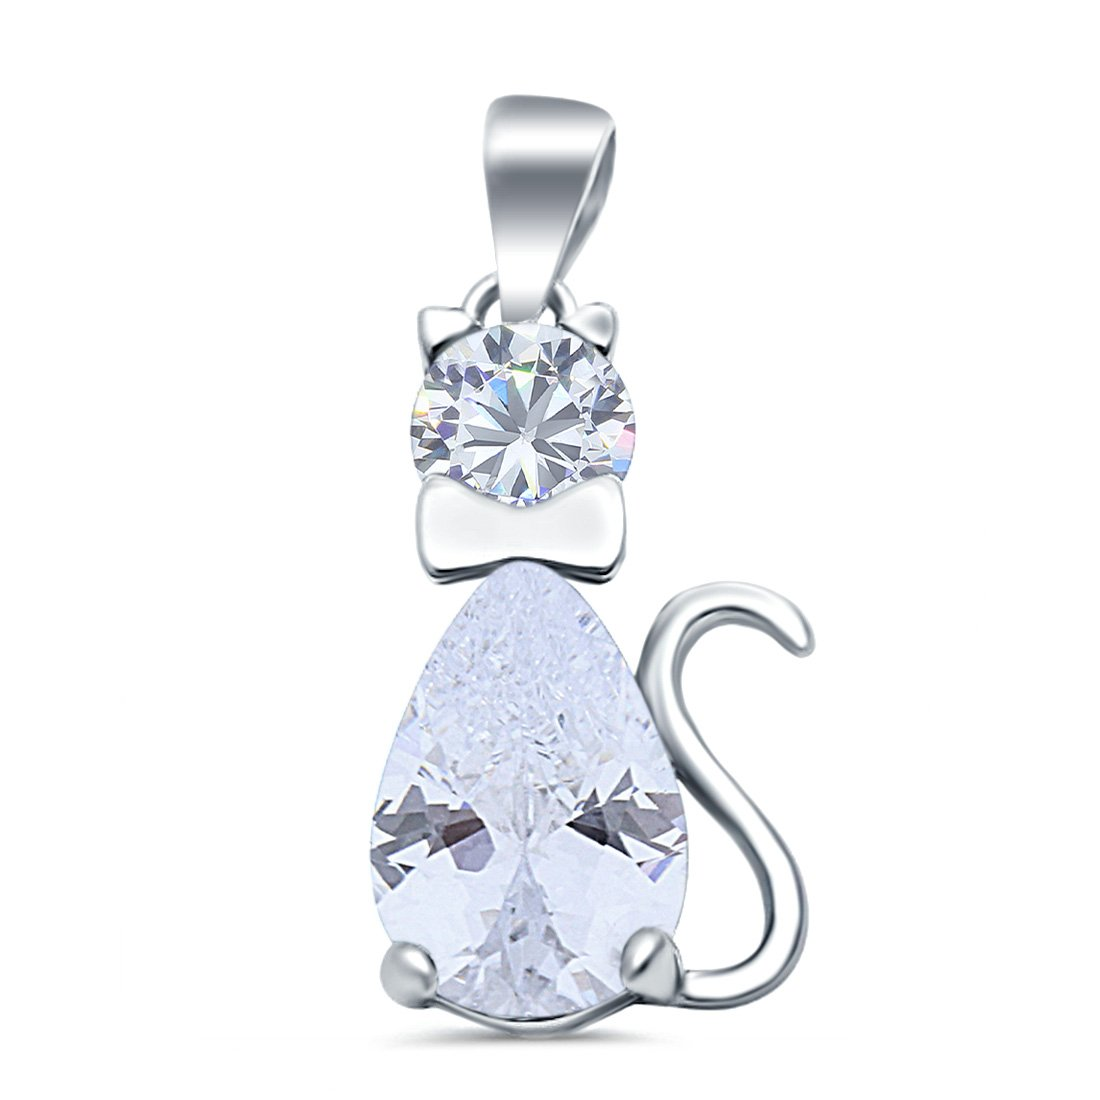 Teardrop Cat Pendant Charm Pear Simulated Cubic Zirconia 925 Sterling Silver